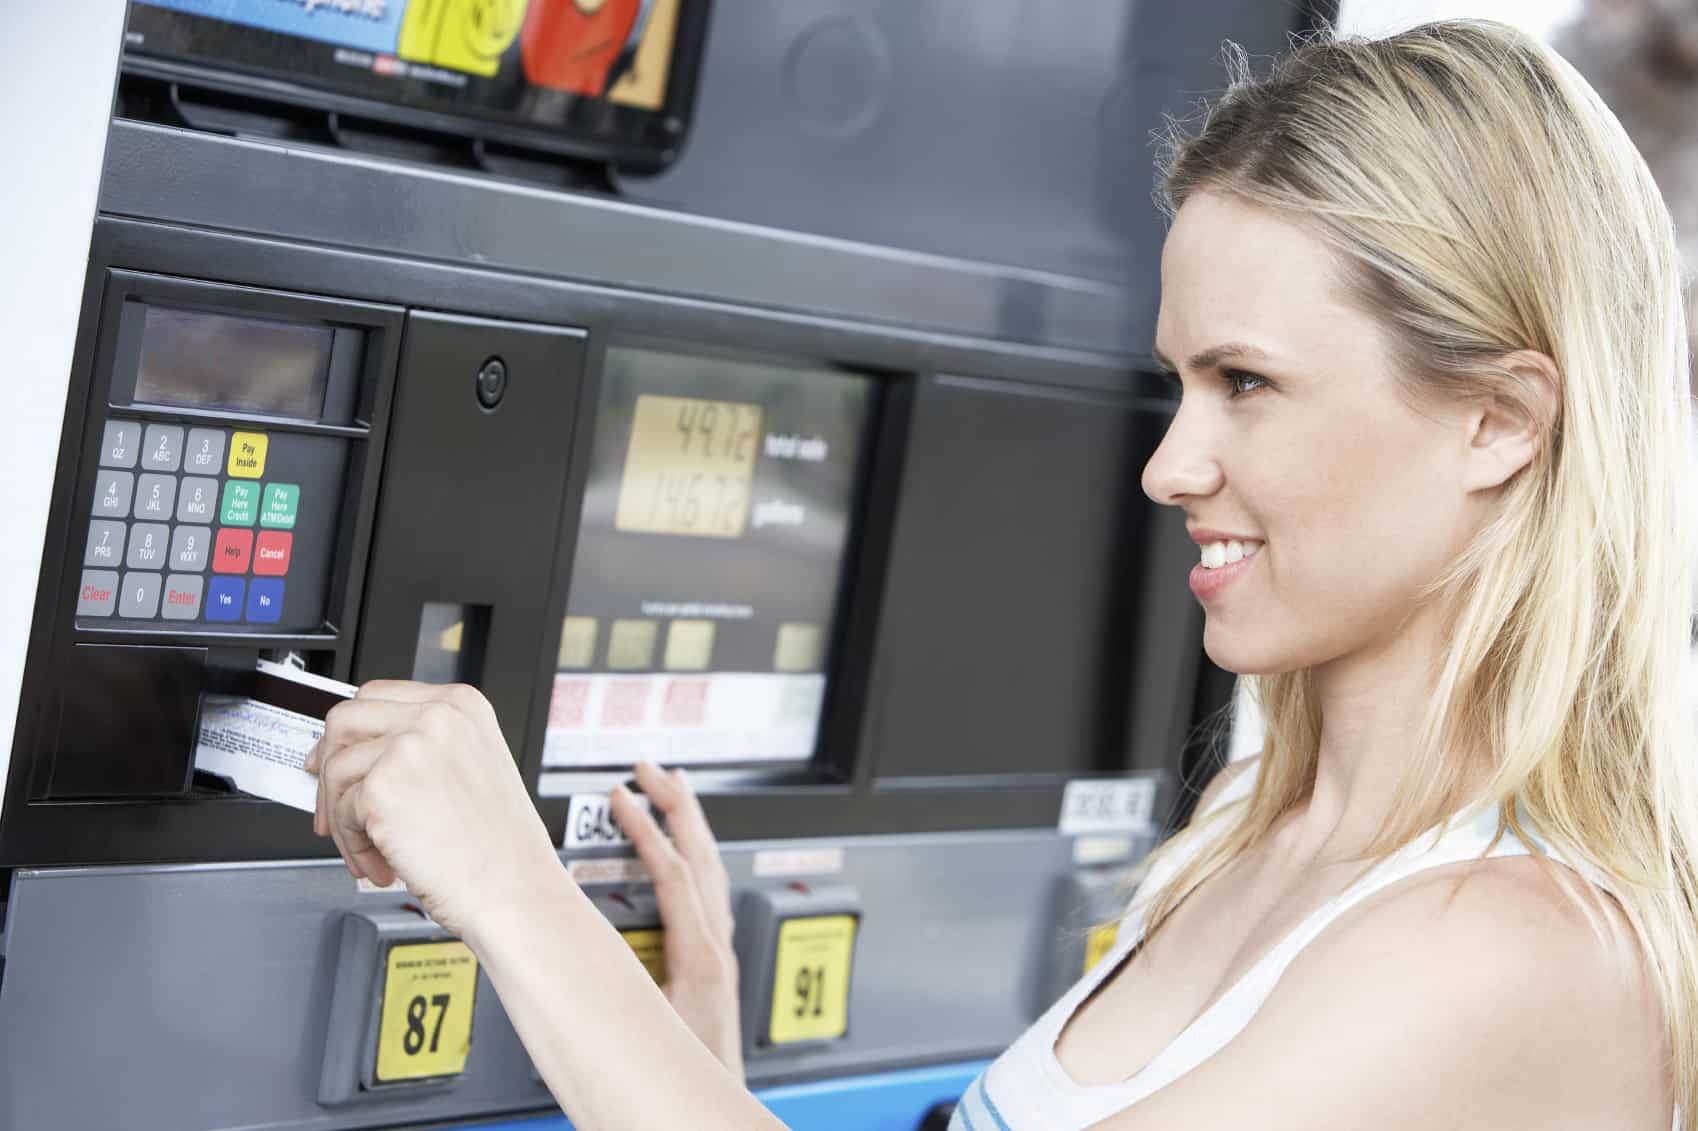 Gas Credit Cards Don't Have the Best Rewards at the Pump